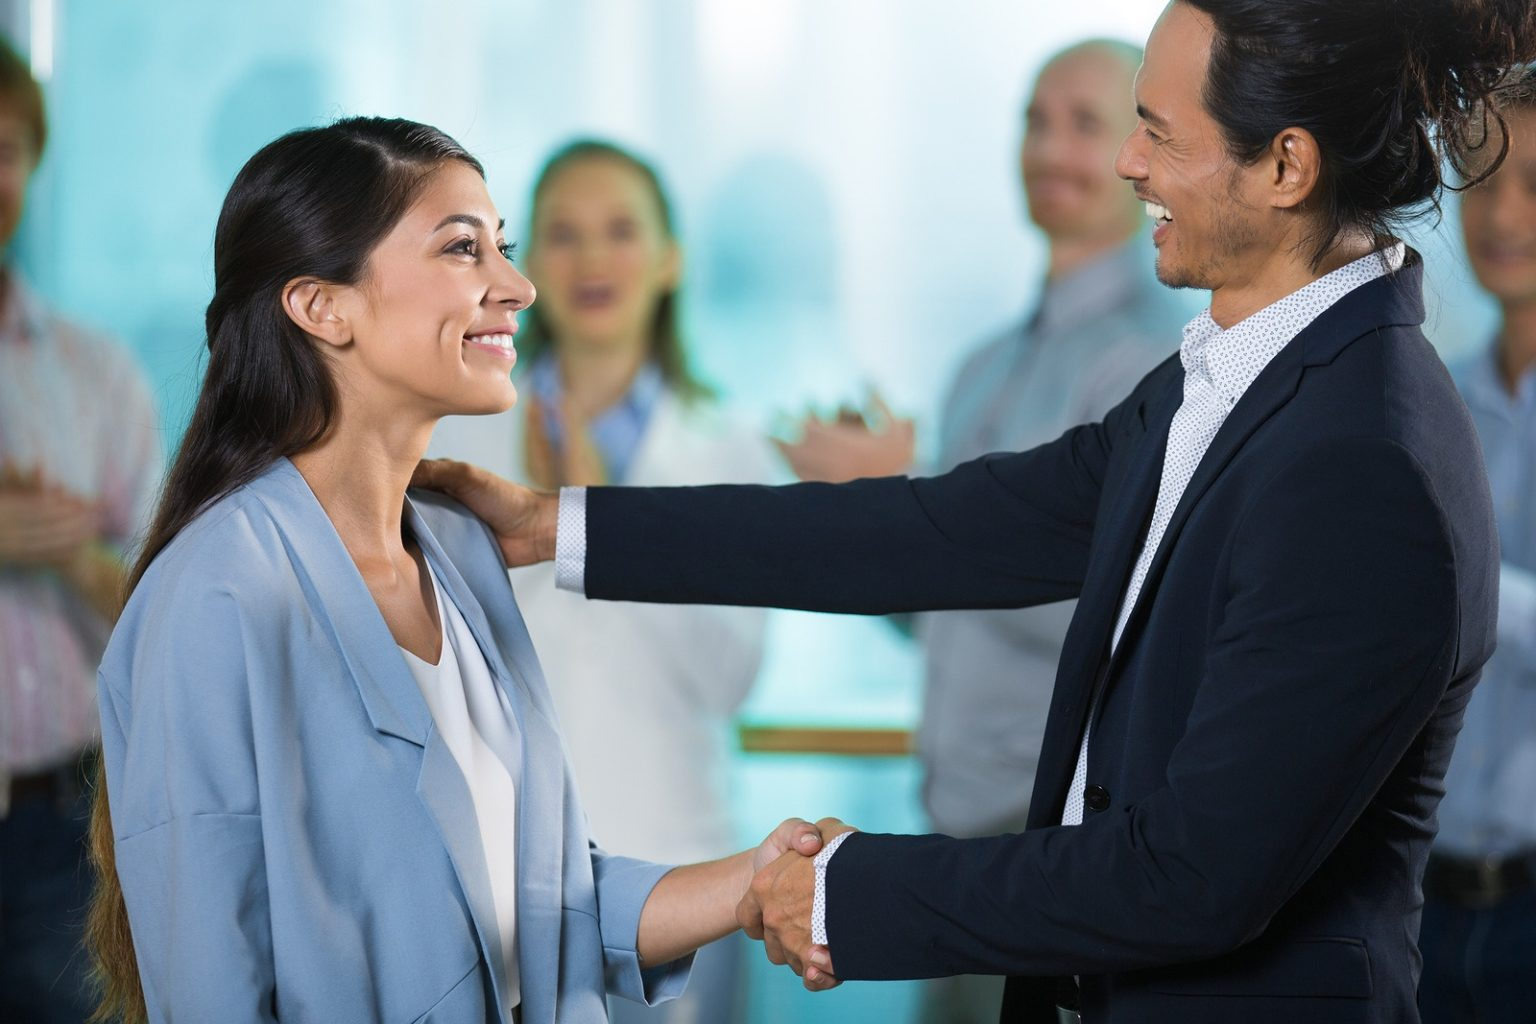 a business man greeting a woman